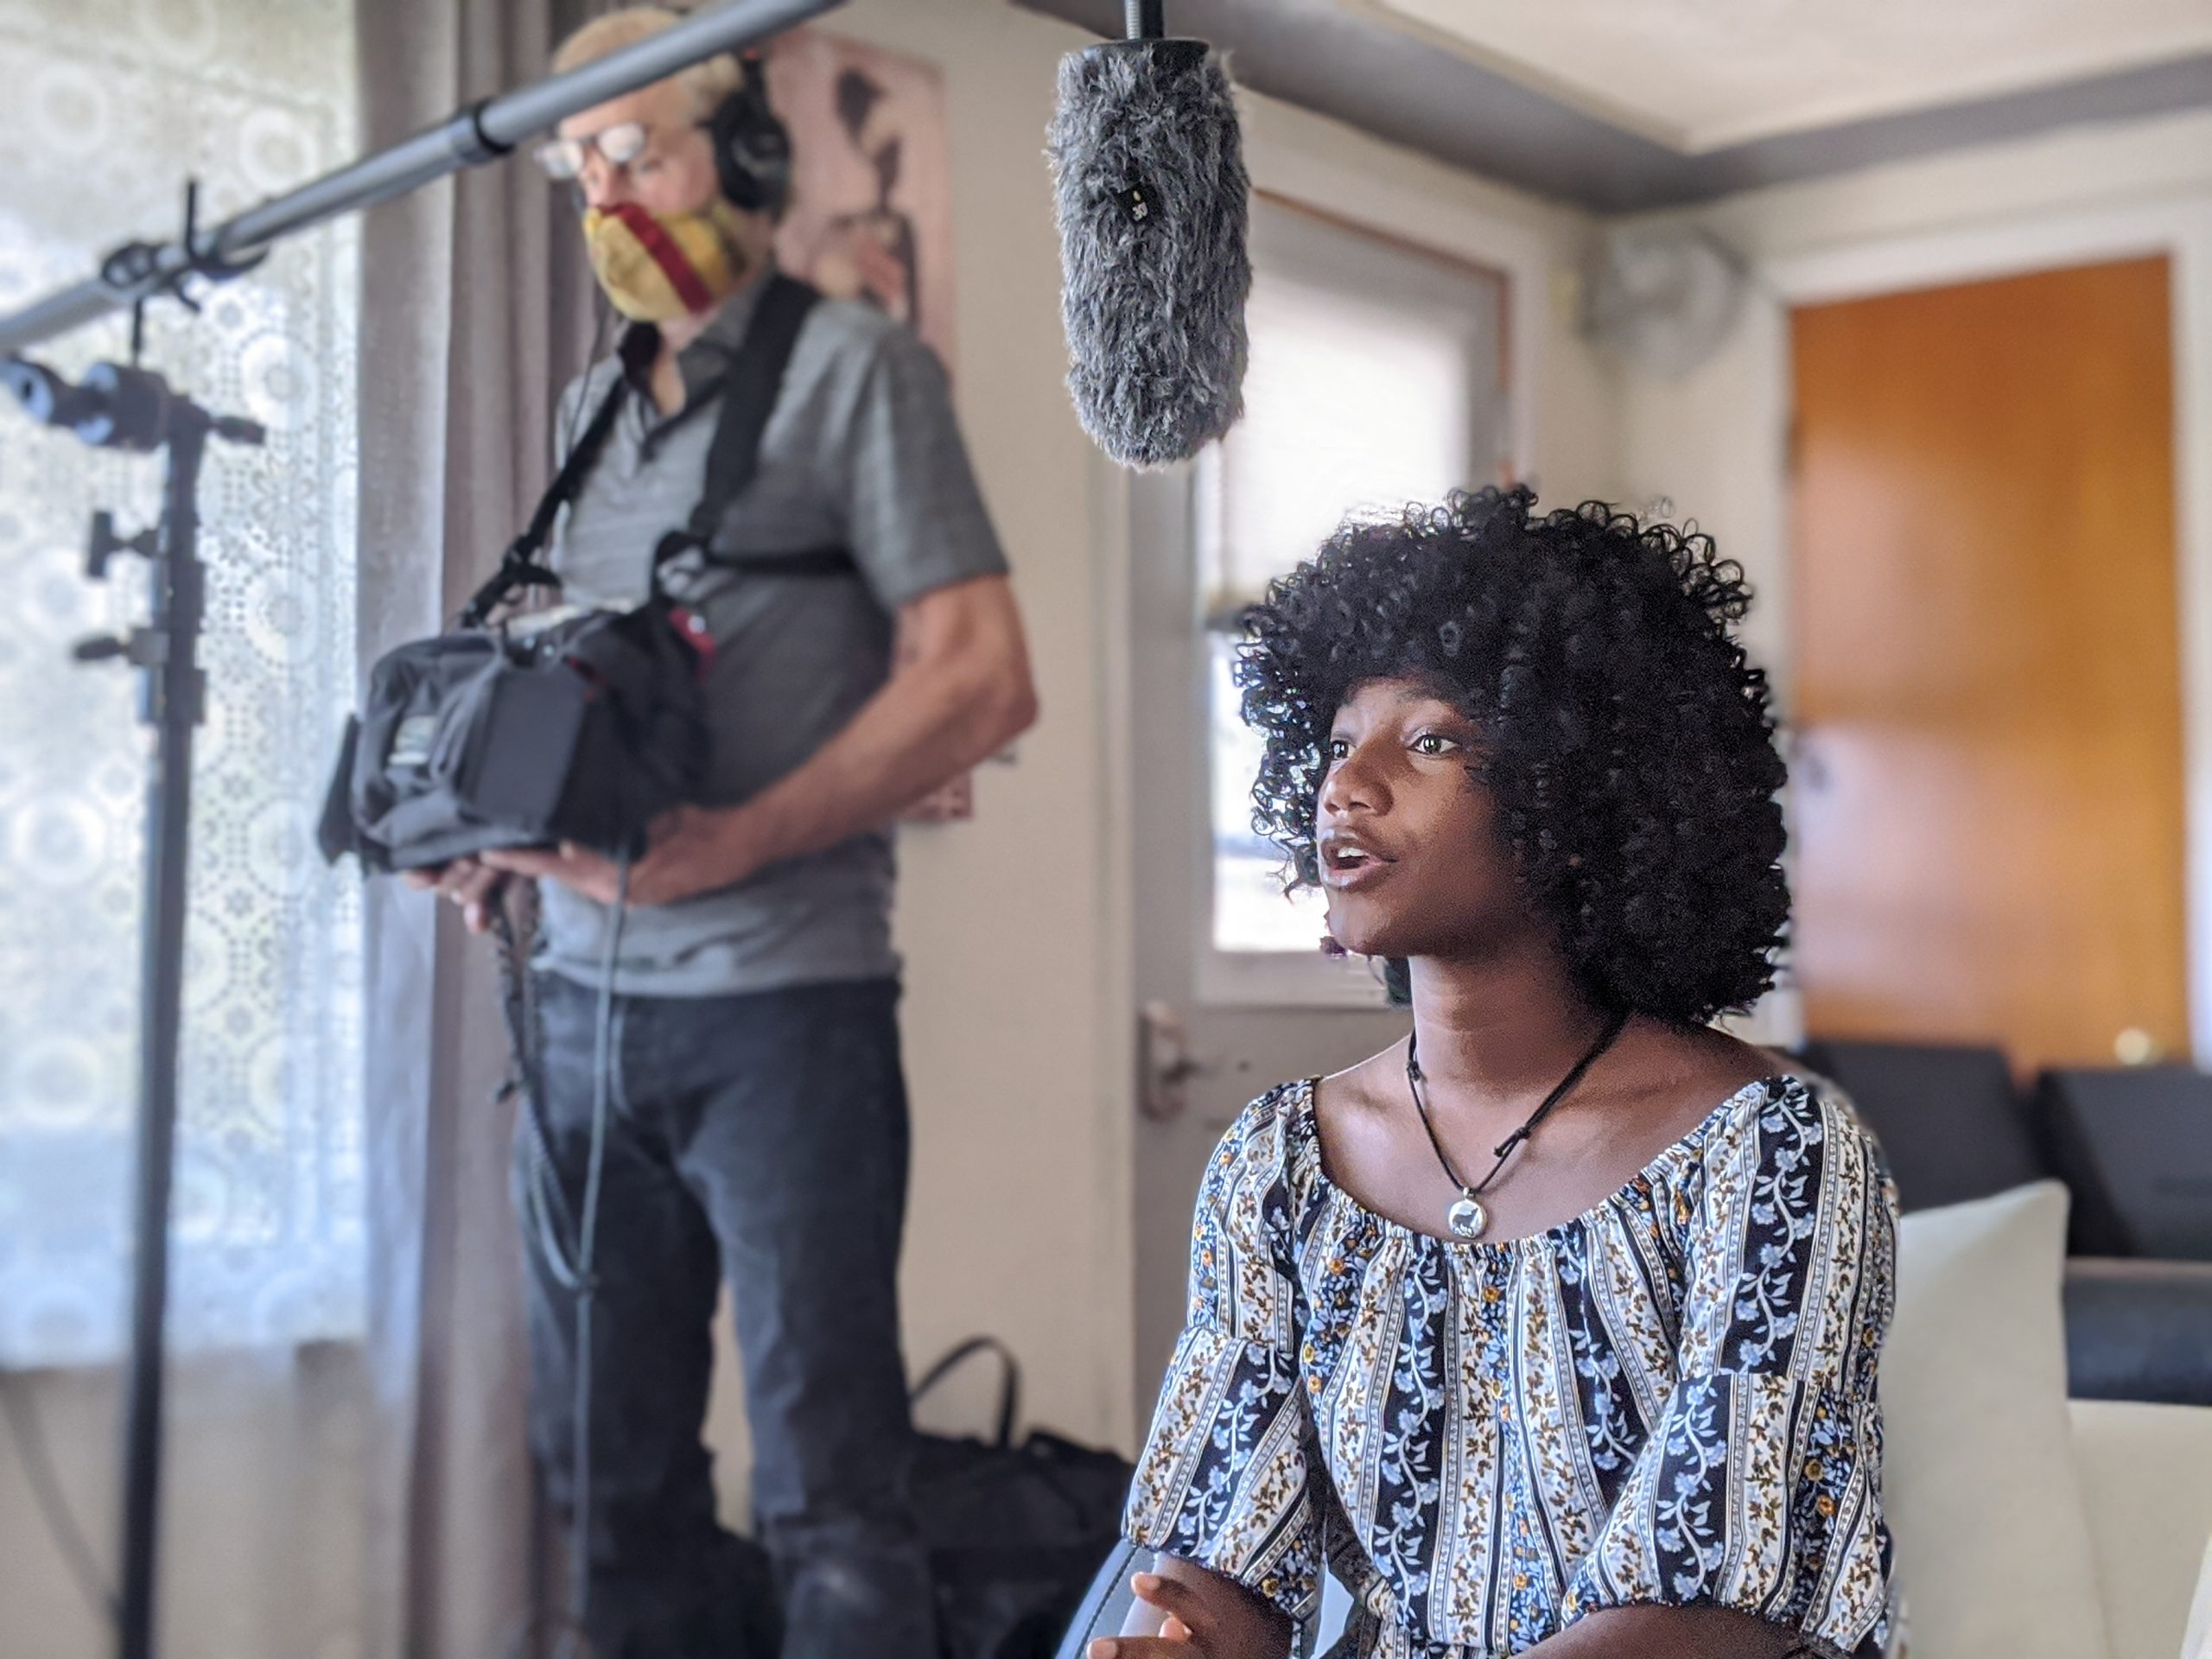 Young black woman speaks and genstures to a film crew